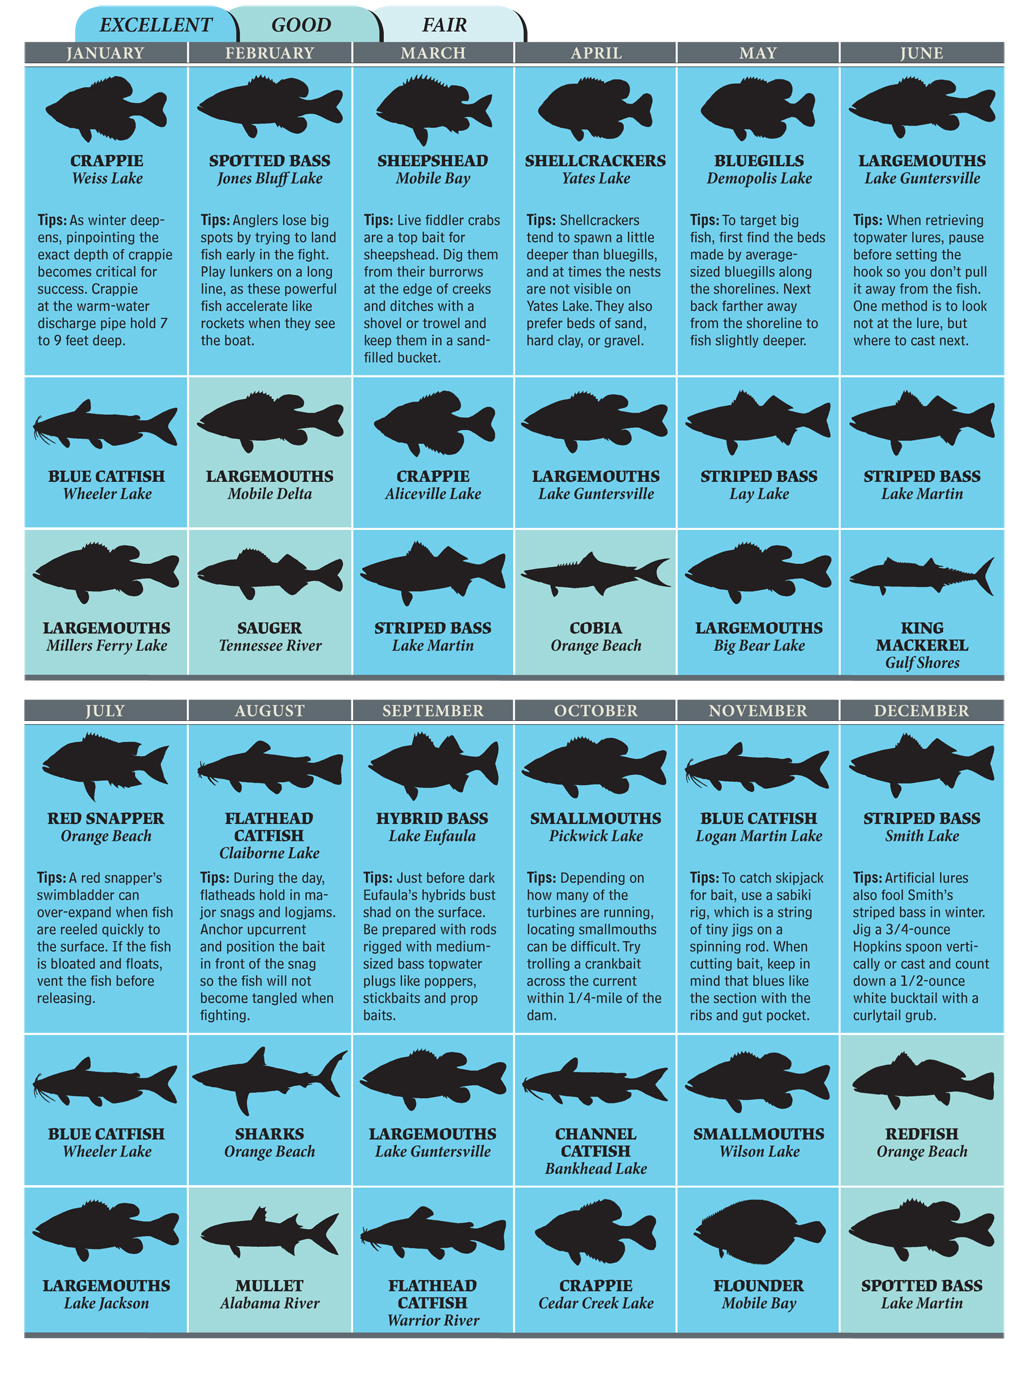 Best Bets for Alabama Fishing in 2012